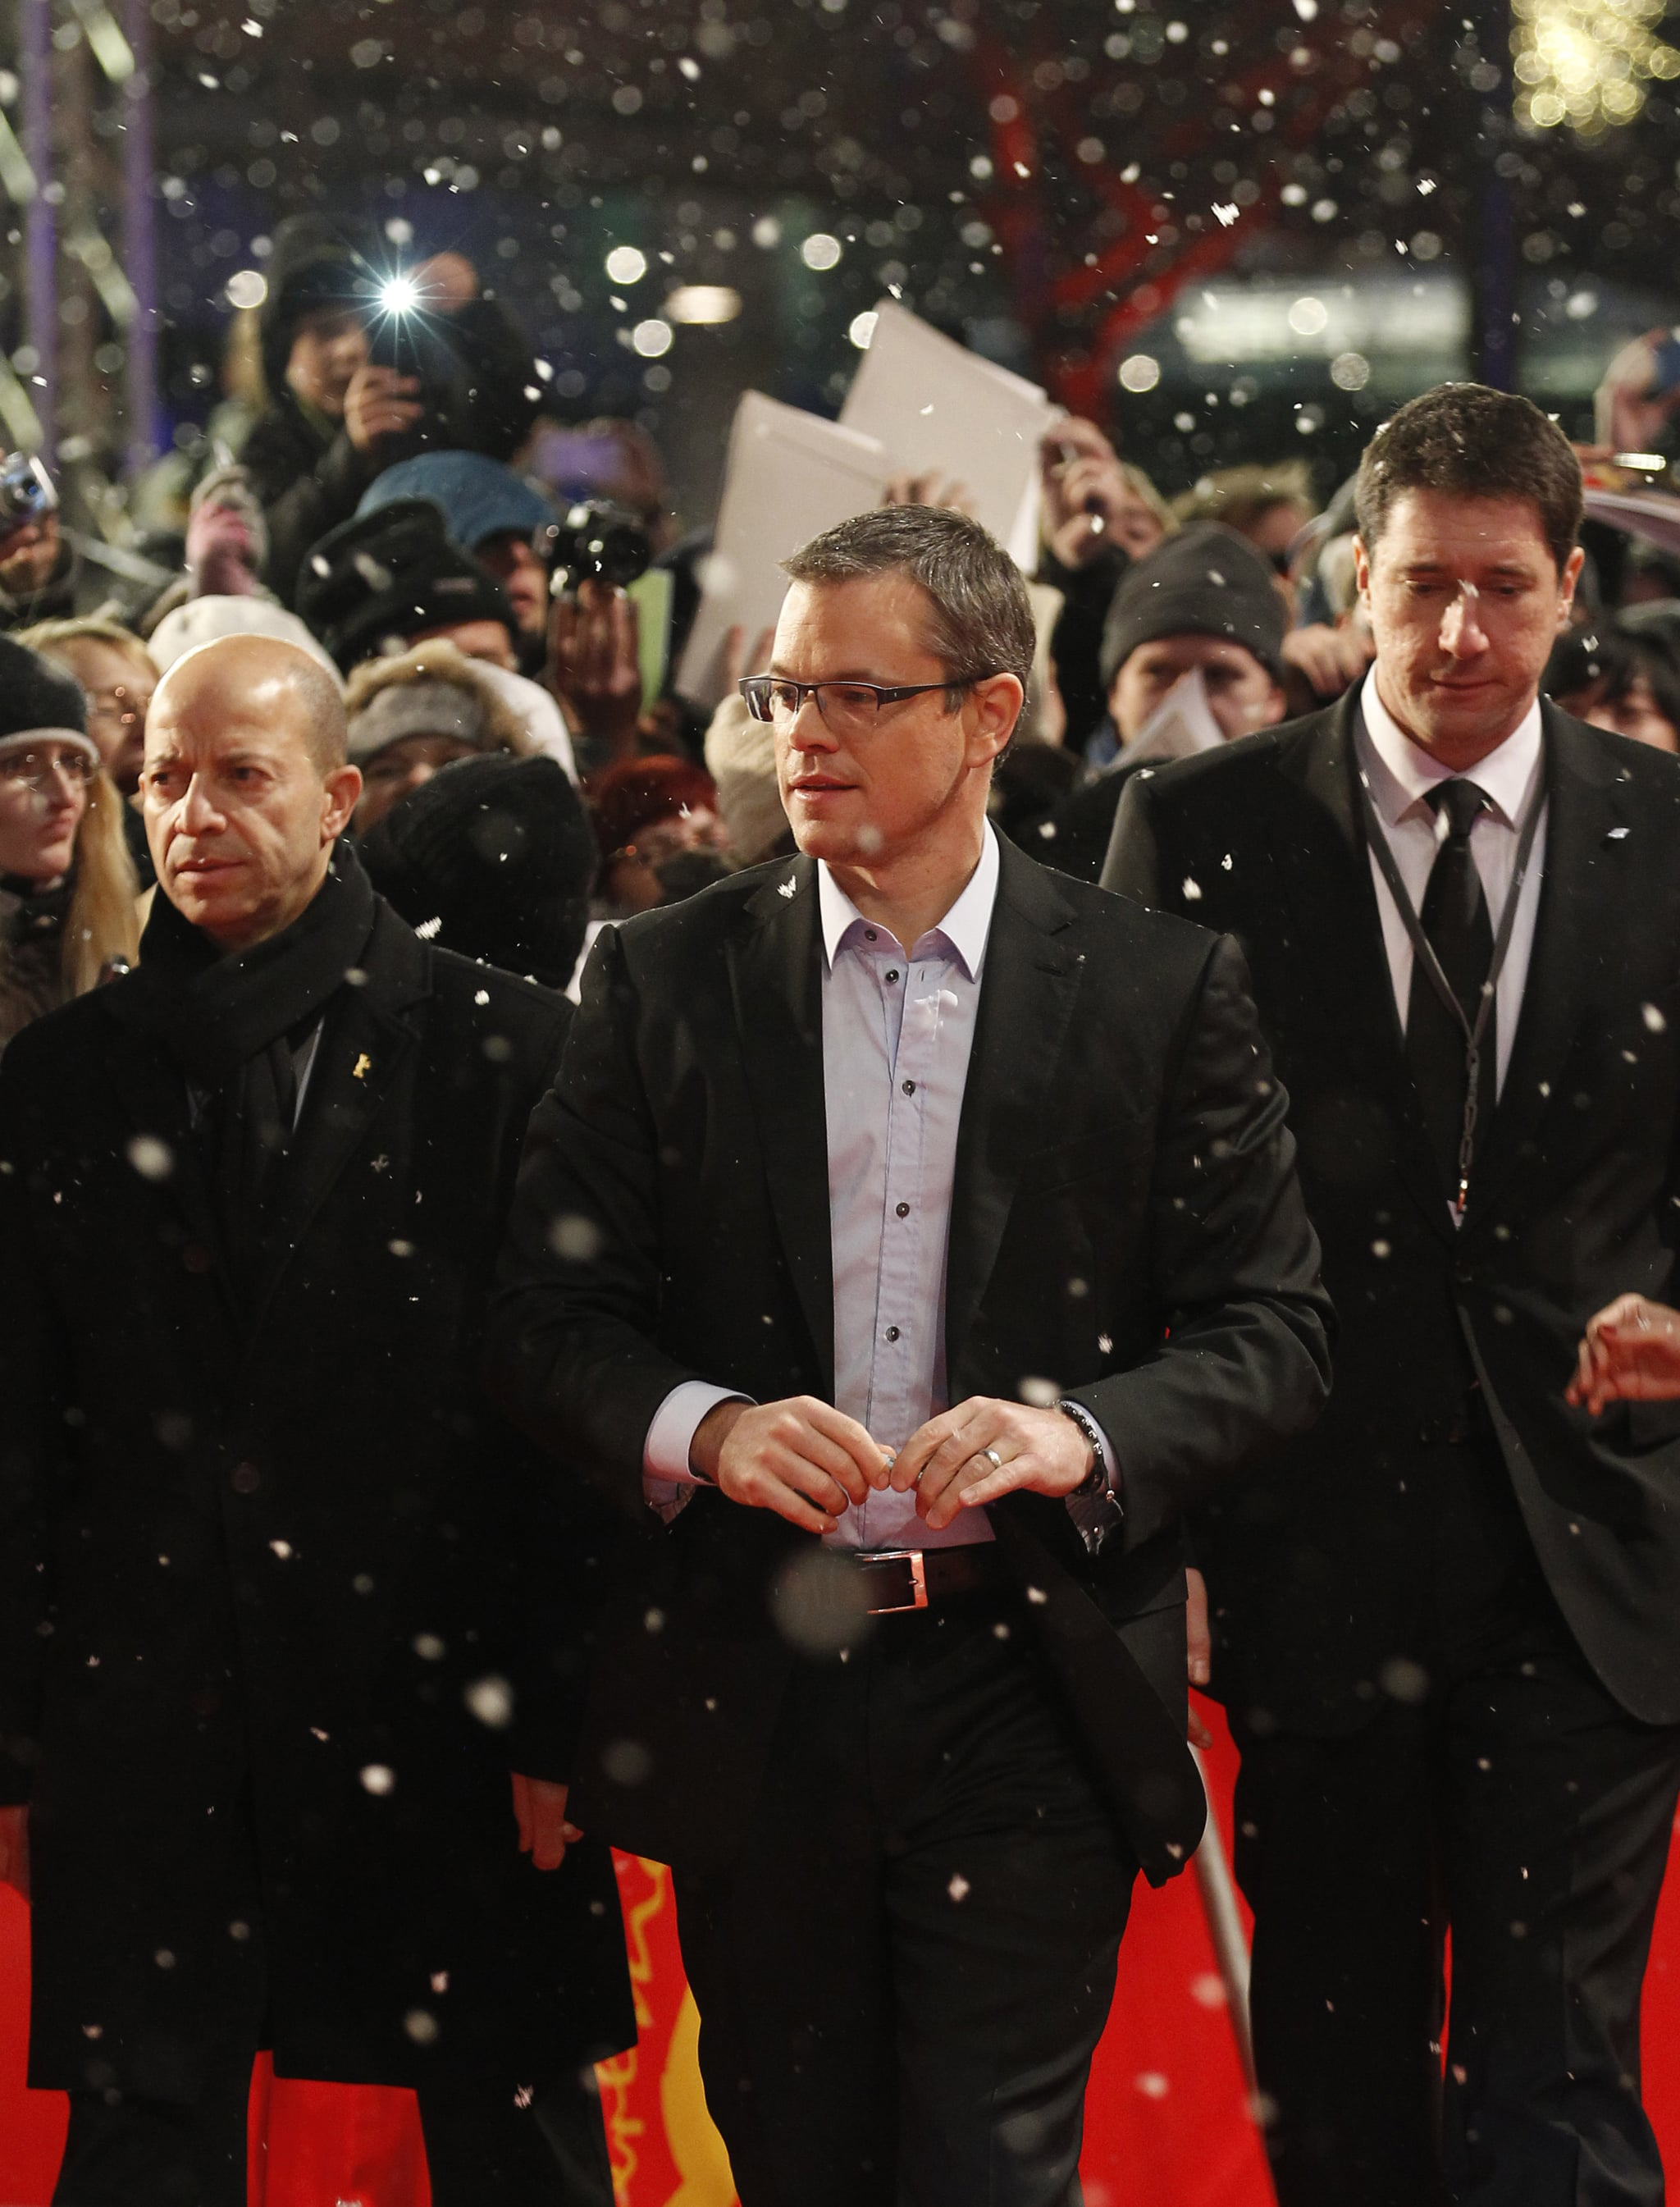 Matt Damon arrived at the Berlin premiere of Promised Land Friday night while it was snowing.